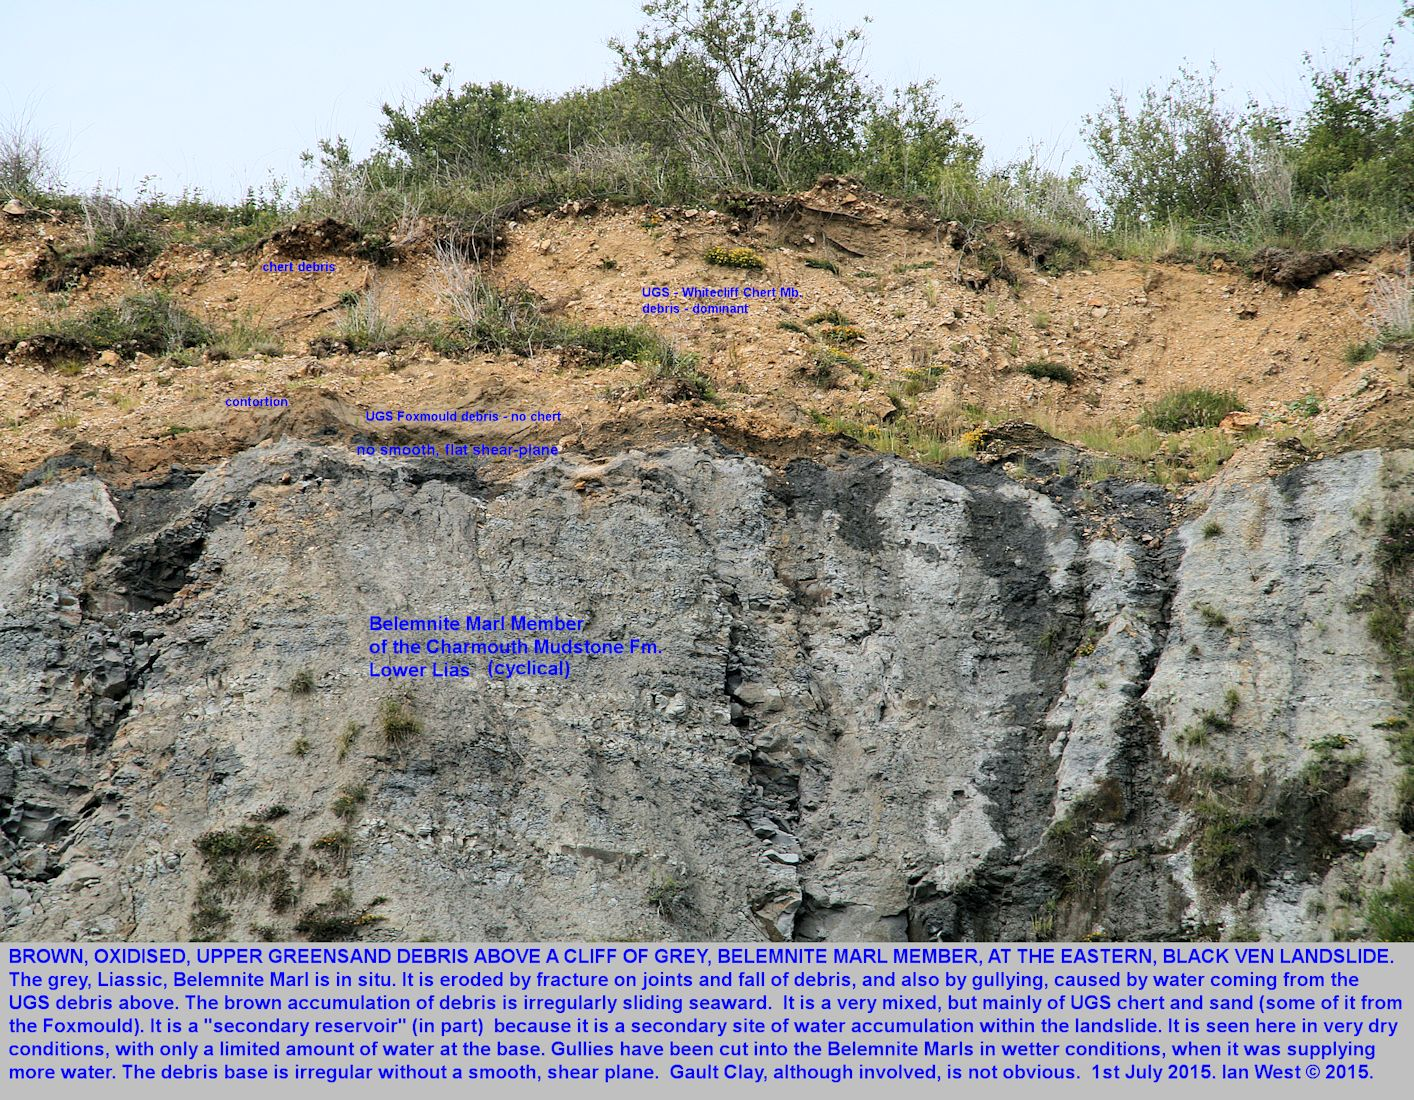 Disrupted, Upper Greensand debris above Liassic Belemnite Marl is, in part, a secondary reservoir for water that facilitates landsliding and mudsliding at Black Ven, Dorset, details shown, 1st July 2015